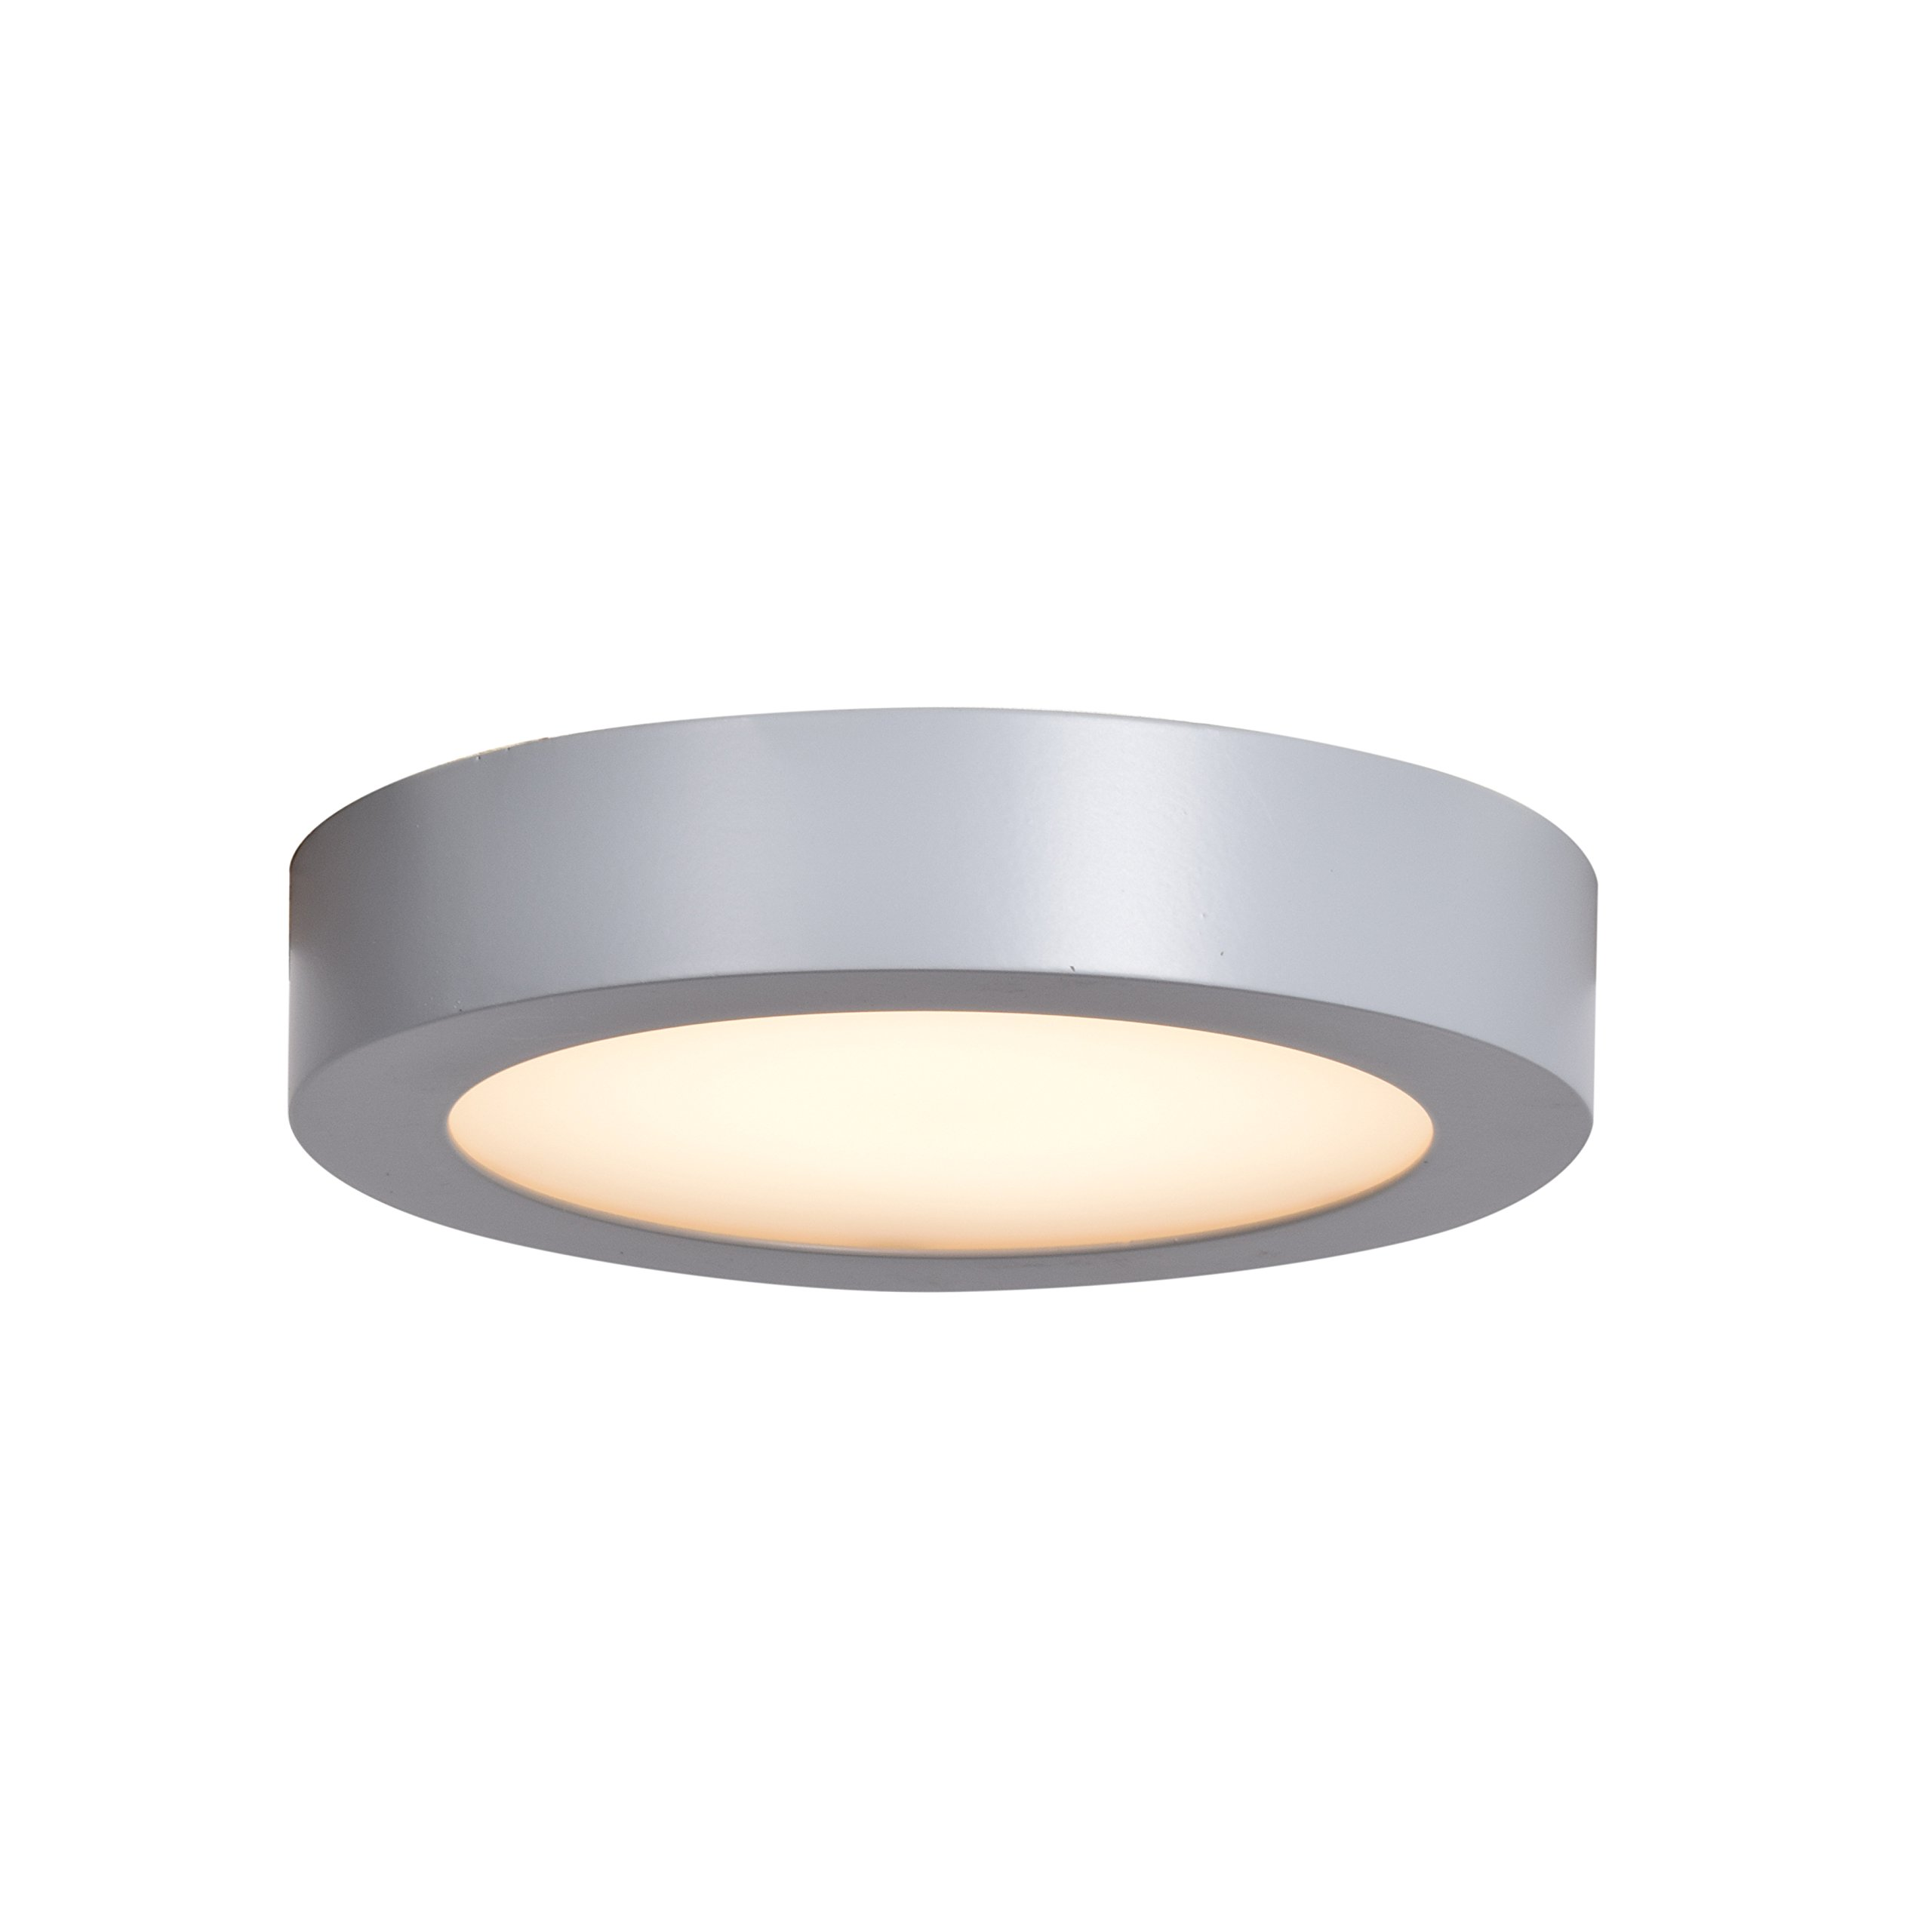 Ulko Exterior LED Outdoor Flush Mount - 6''D - Silver - Acrylic Lens Diffuser by Access Lighting - HI